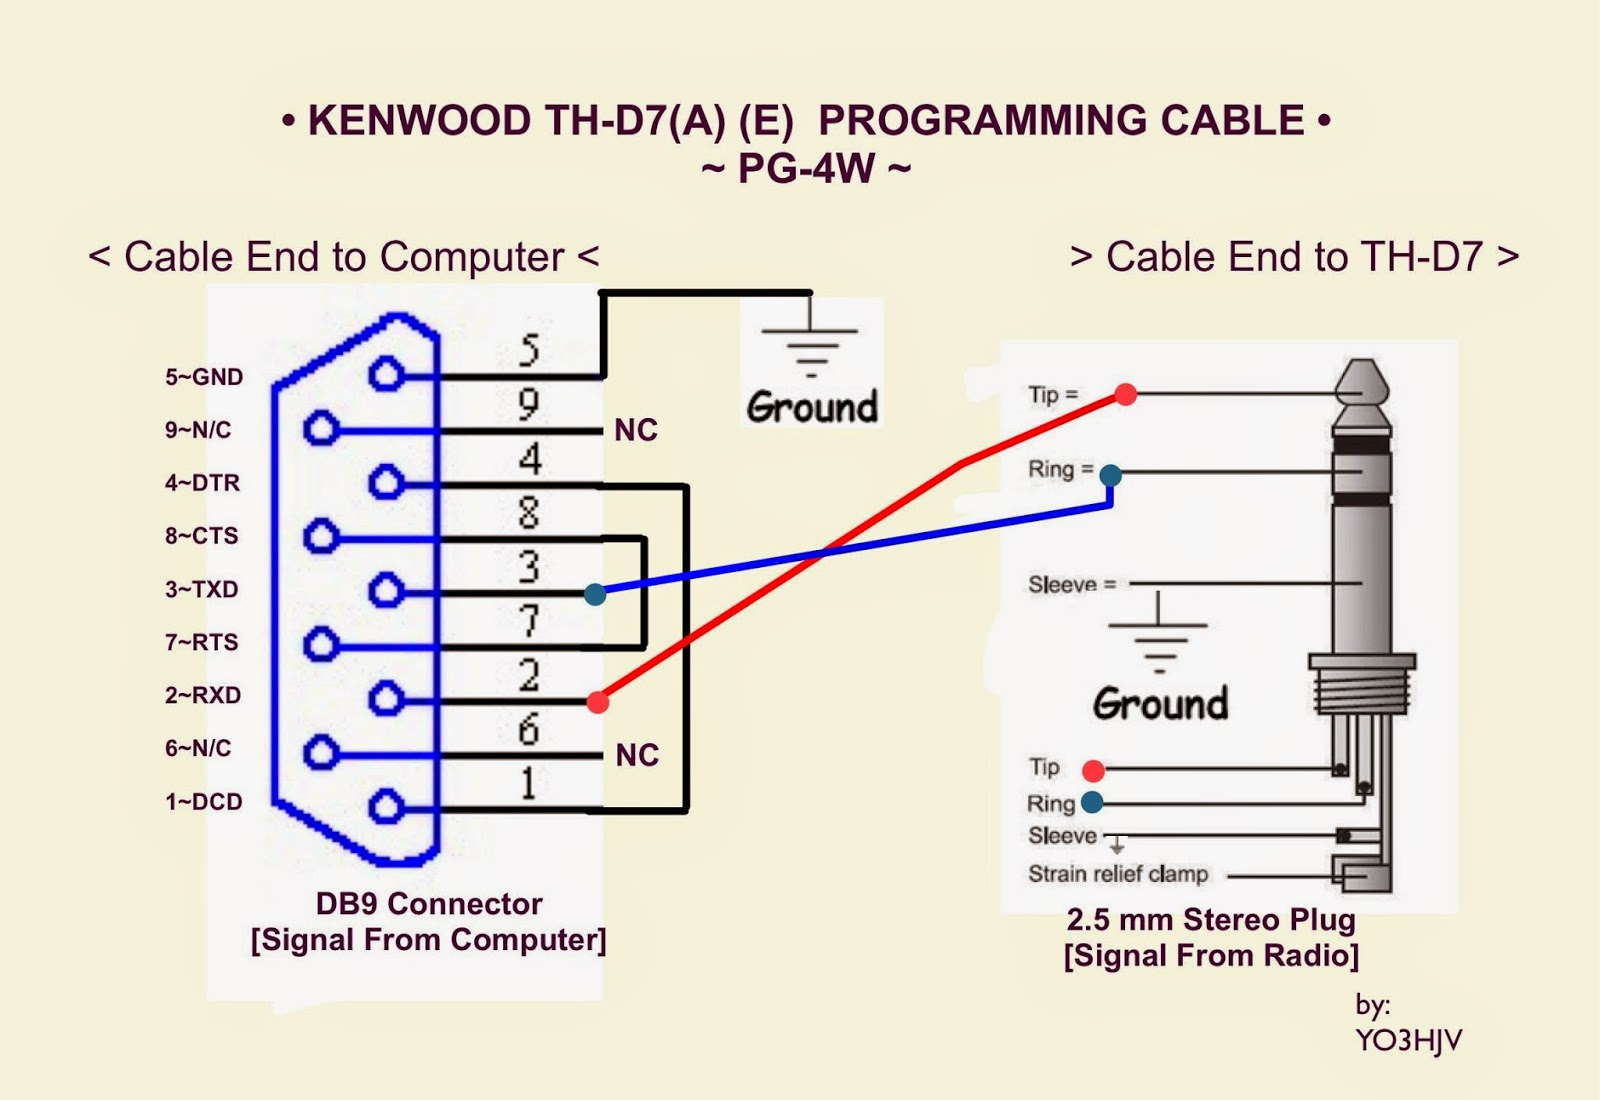 Cable Wiring Diagram : Usb cable wiring diagram for microphone hard drive